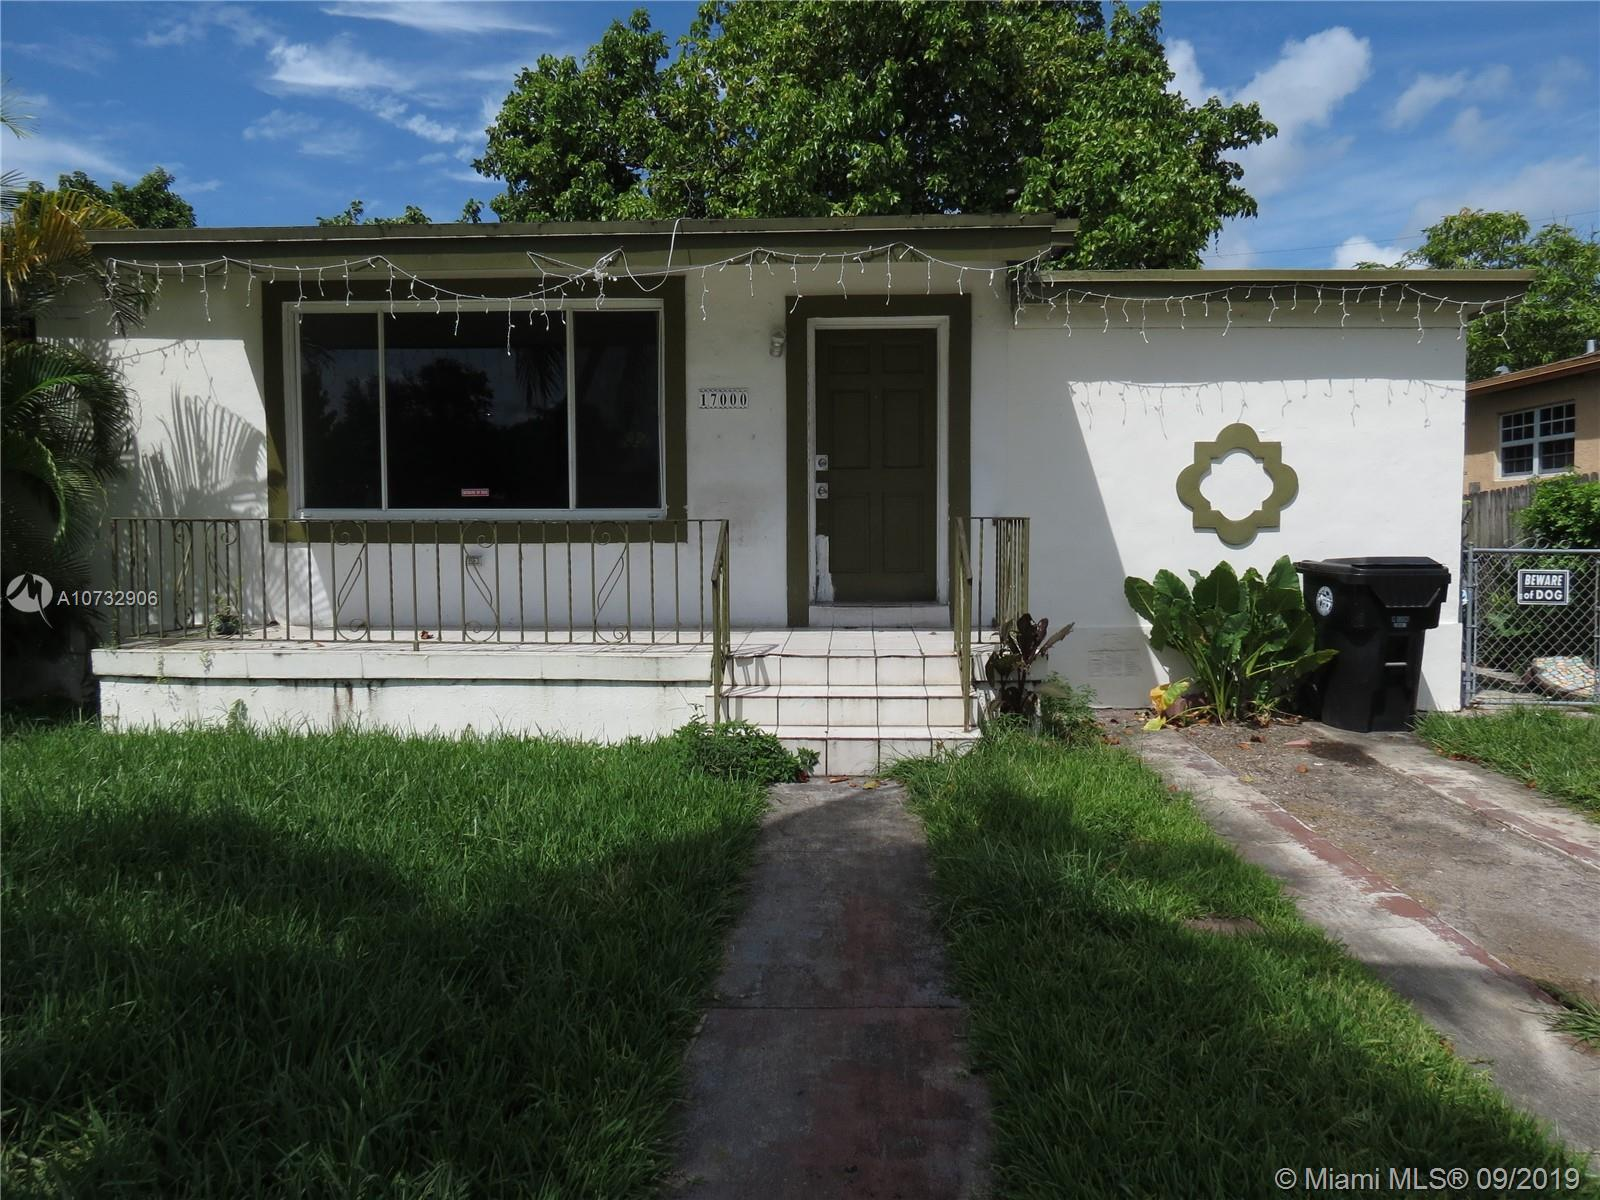 17000 NE 5th Ct - North Miami Beach, Florida